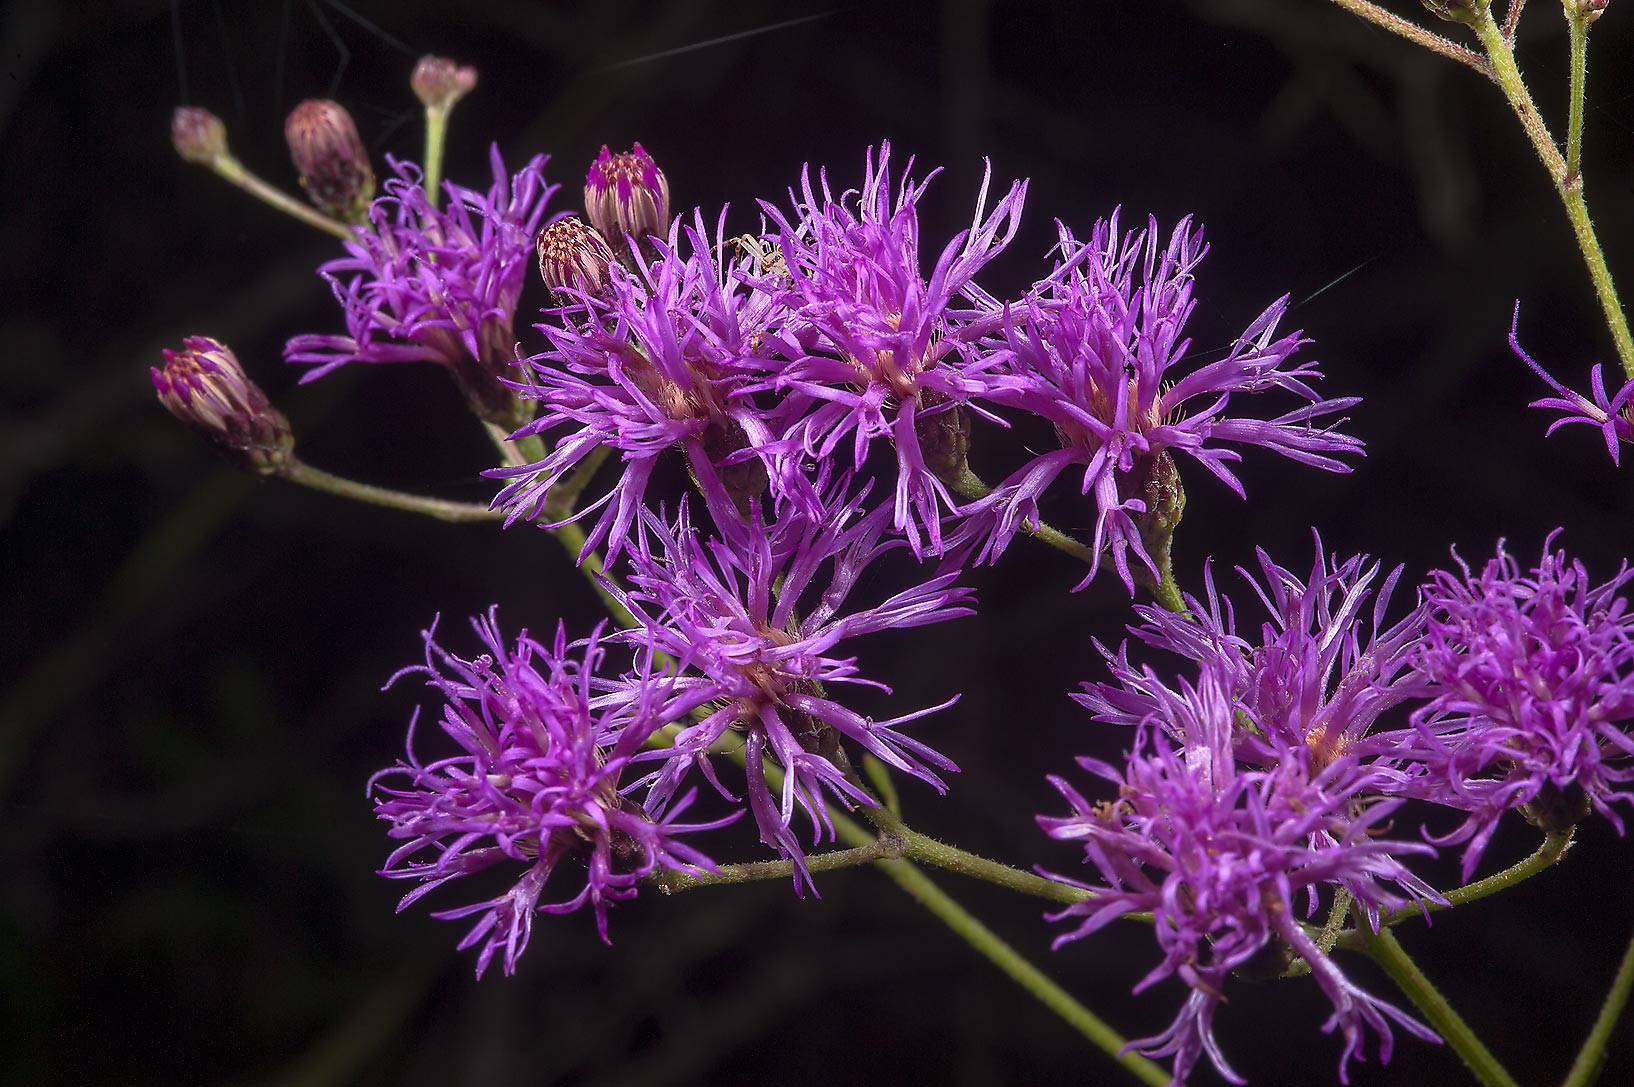 Western ironweed (Vernonia baldwini) in Lick Creek Park. College Station, Texas